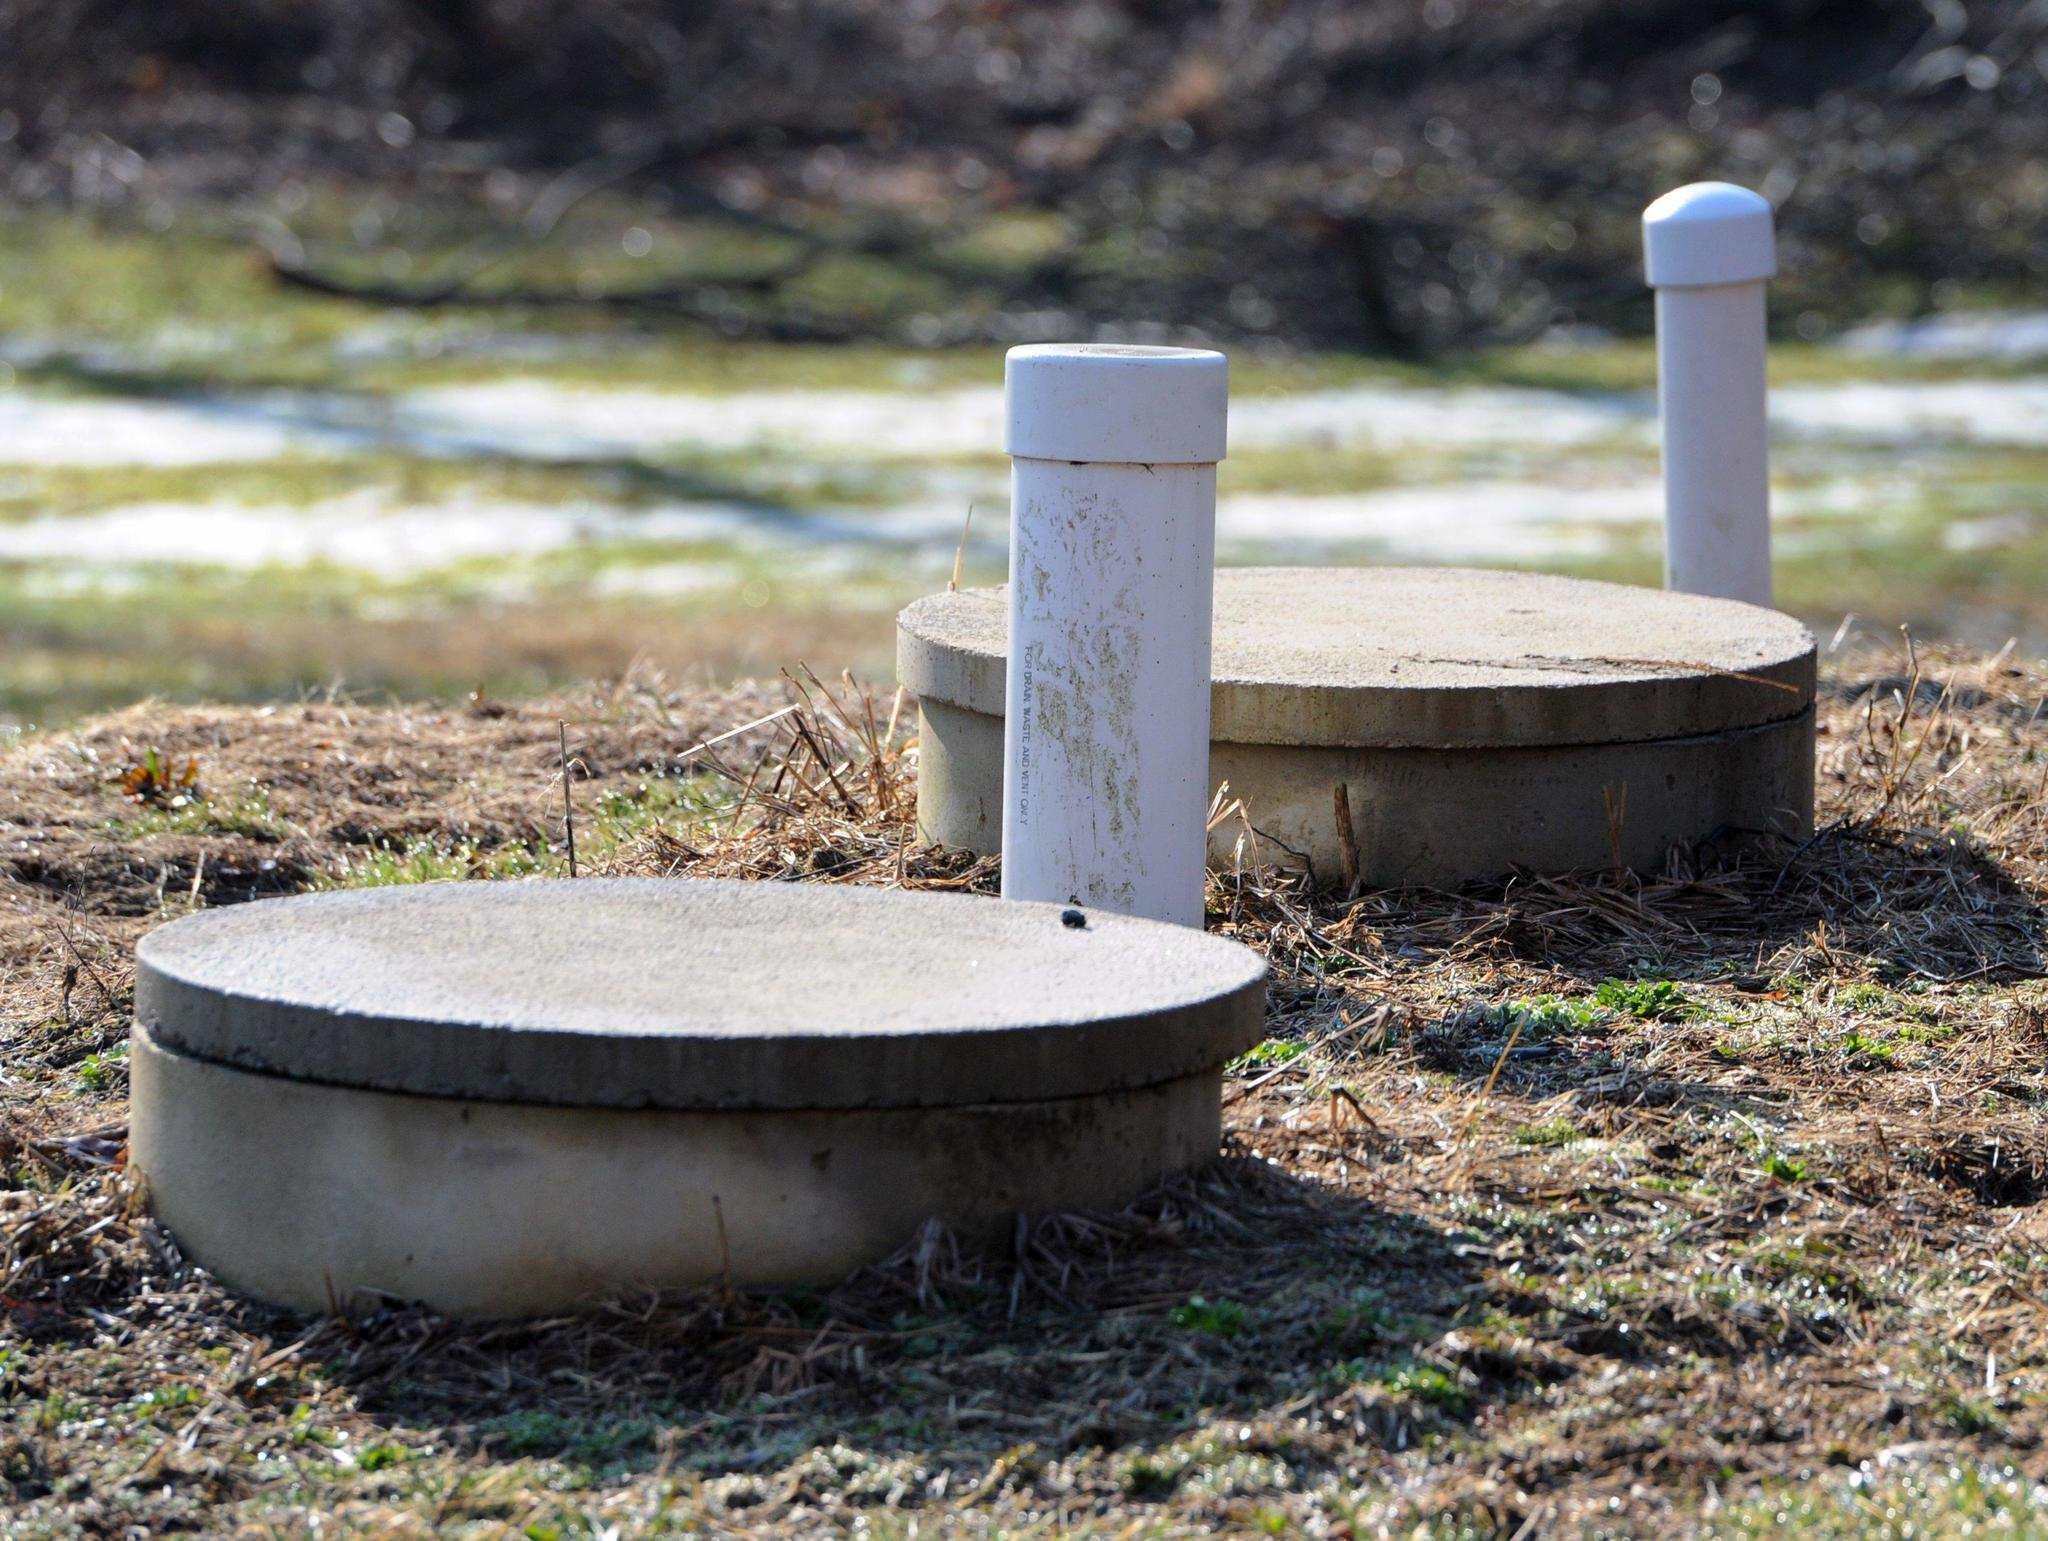 Harford poised to remove controversial septic technology